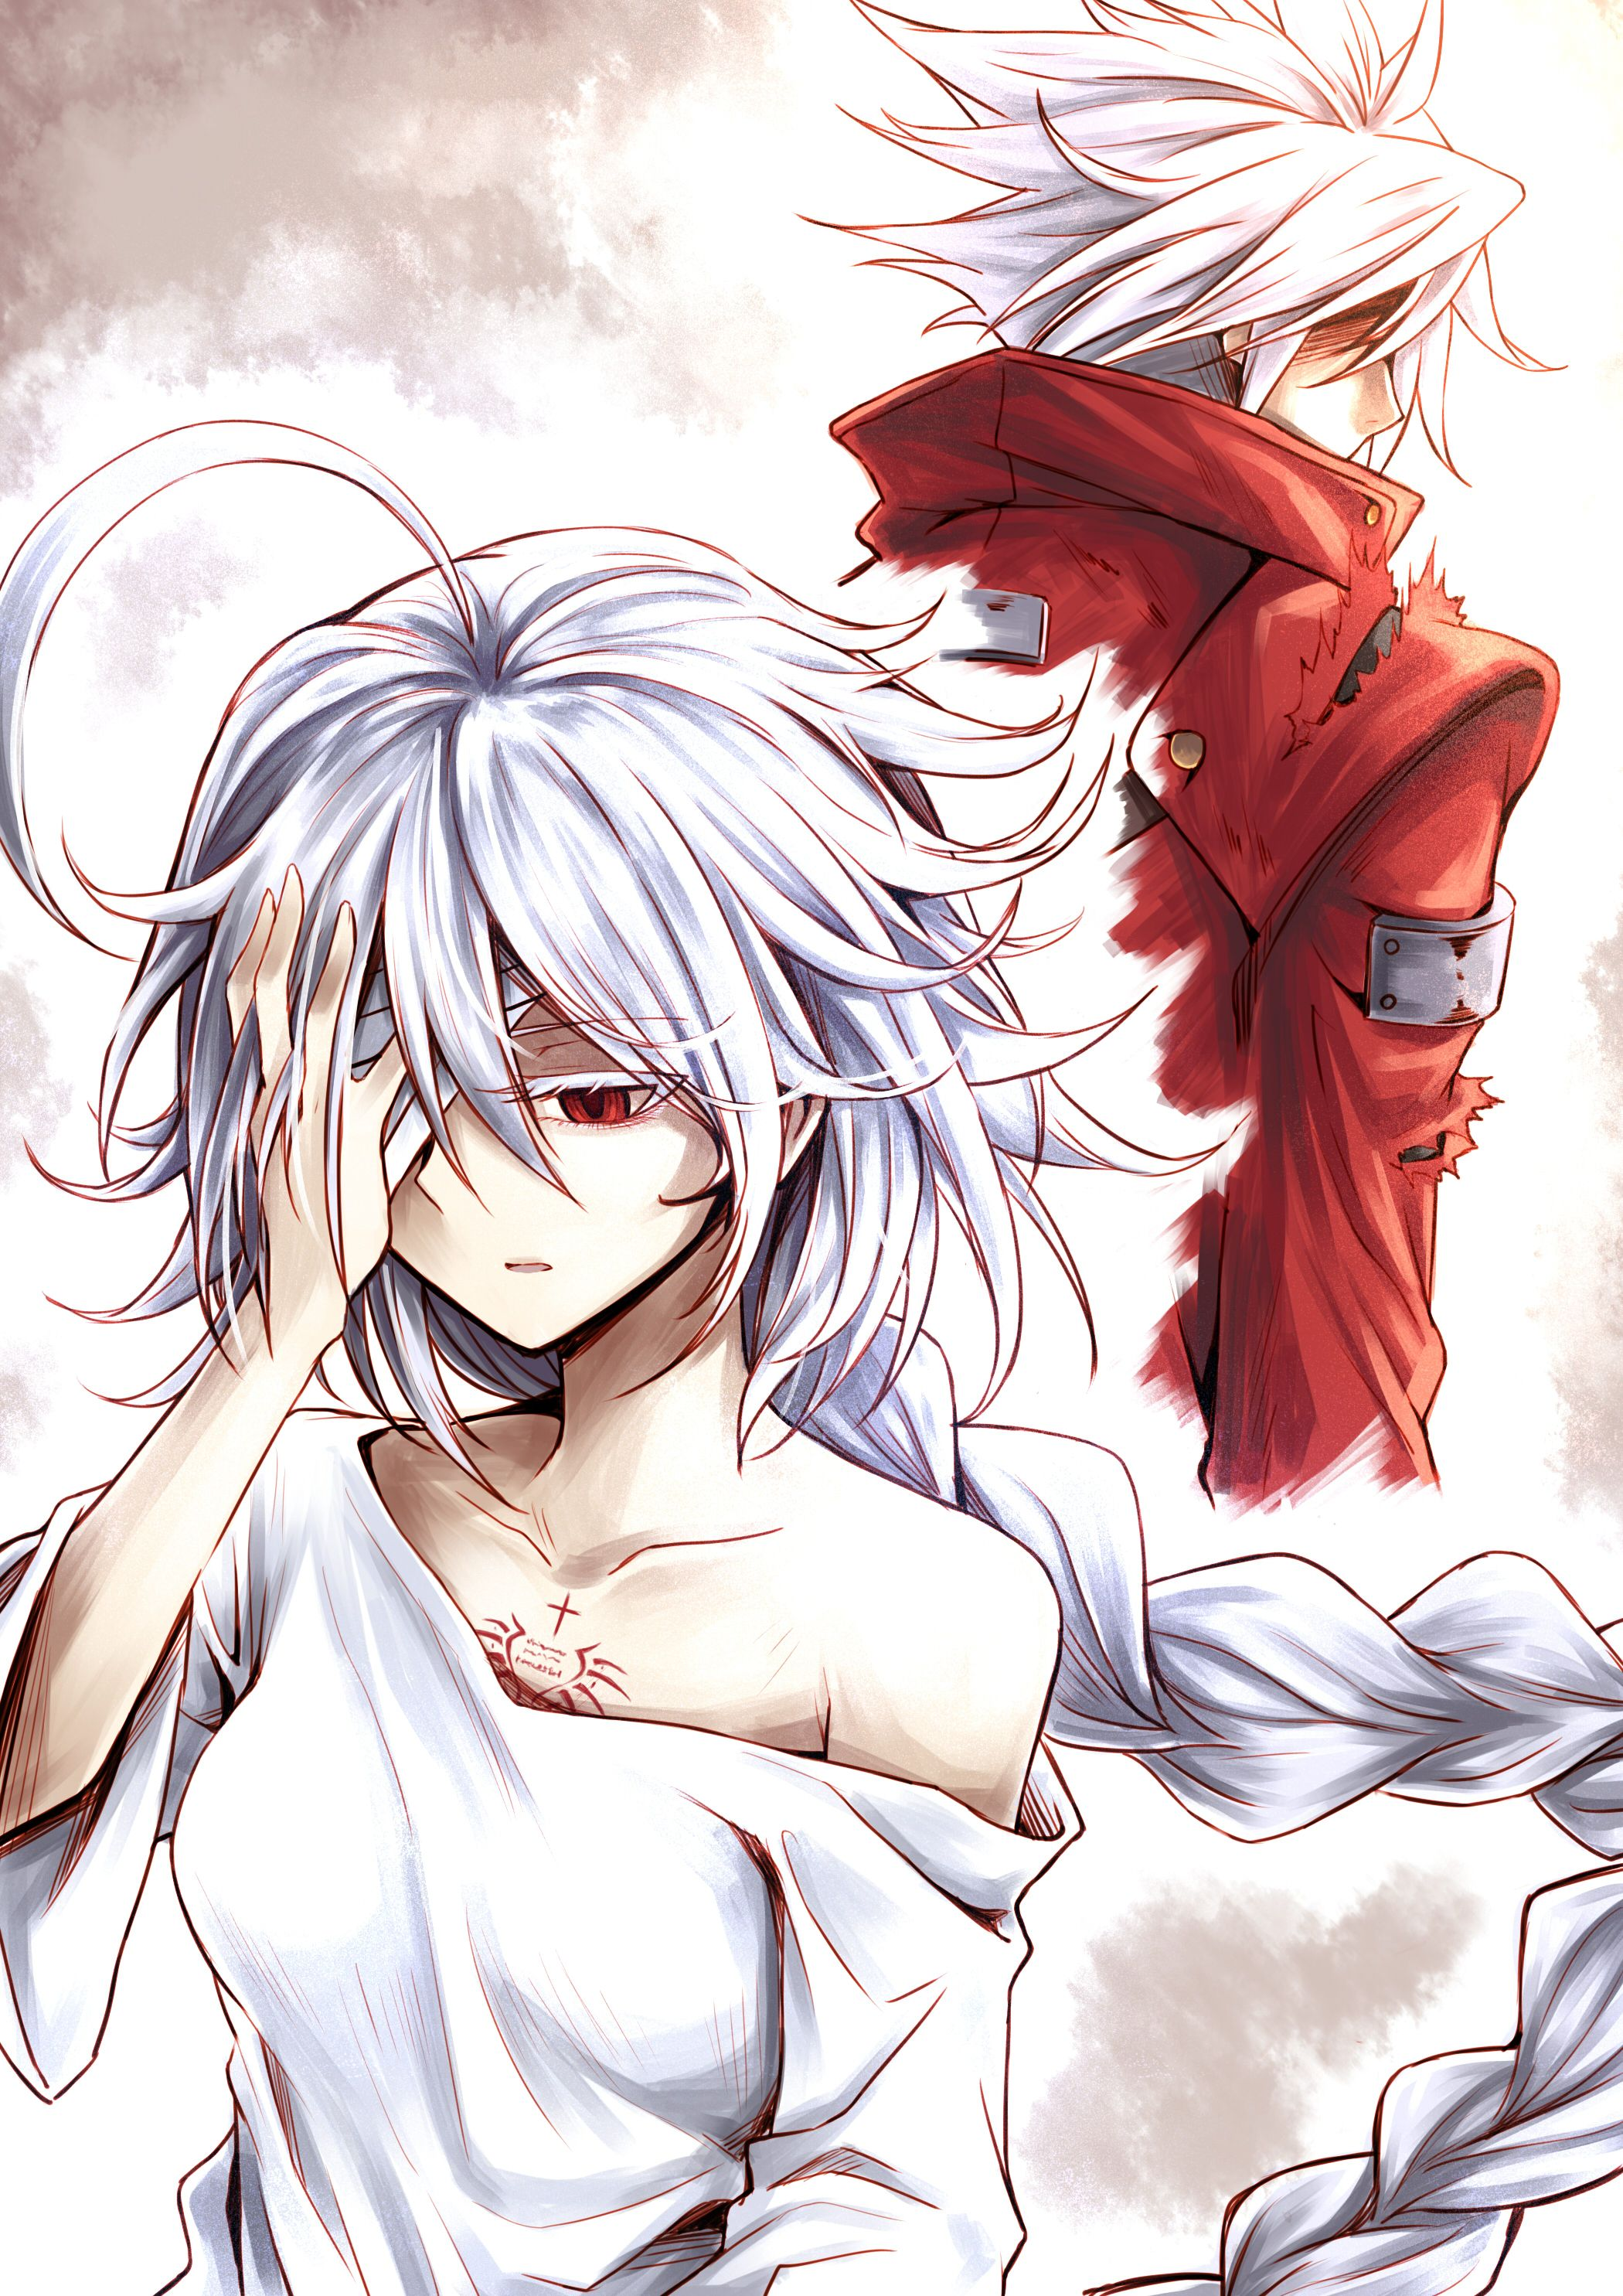 535343-2100x2970-blazblue-nu-13+(blazblue)-ragna+the+bloodedge